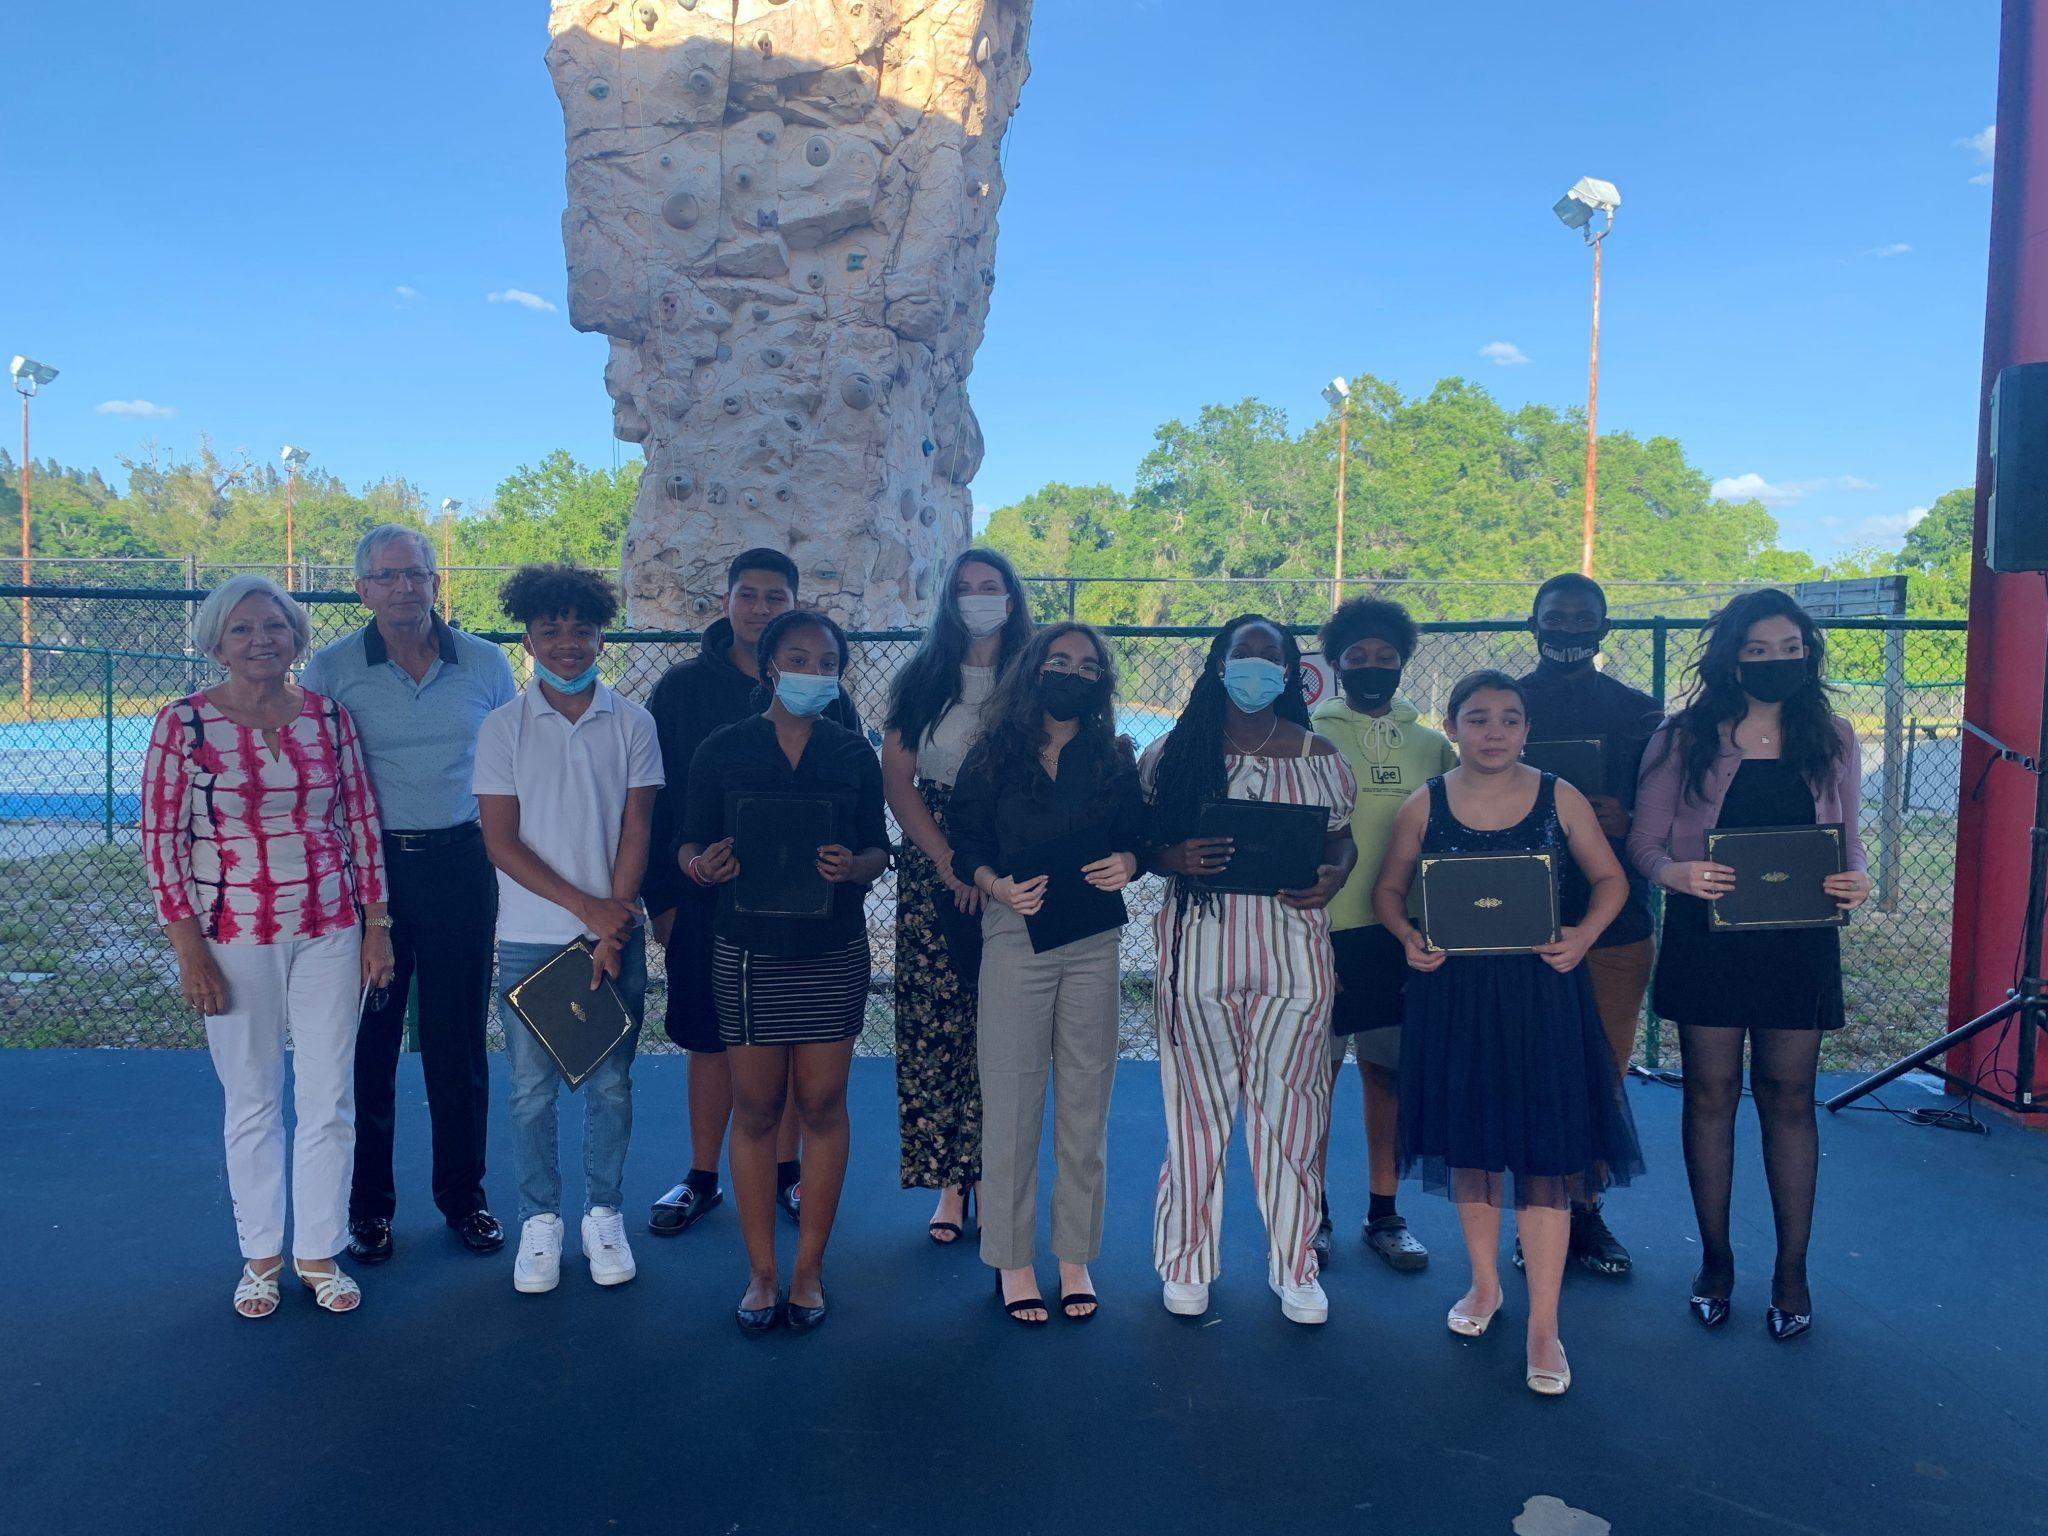 11 Sarasota teens named Townsend Scholars; awarded two-year college scholarships by Steven and Marjolaine Townsend and Take Stock in Children